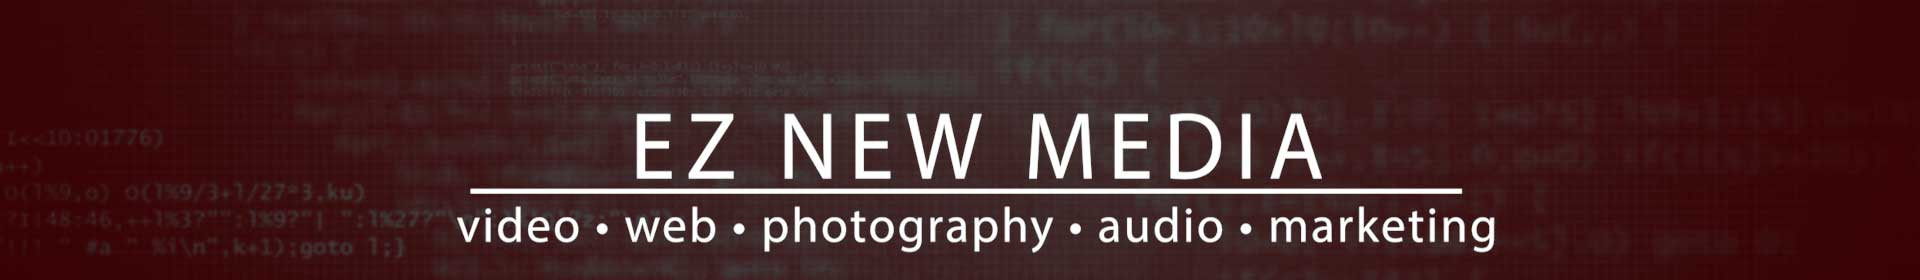 EZ New-Media - video production, website development, photography, audio production, marketing - Colfax, Eau Claire, Wisconsin